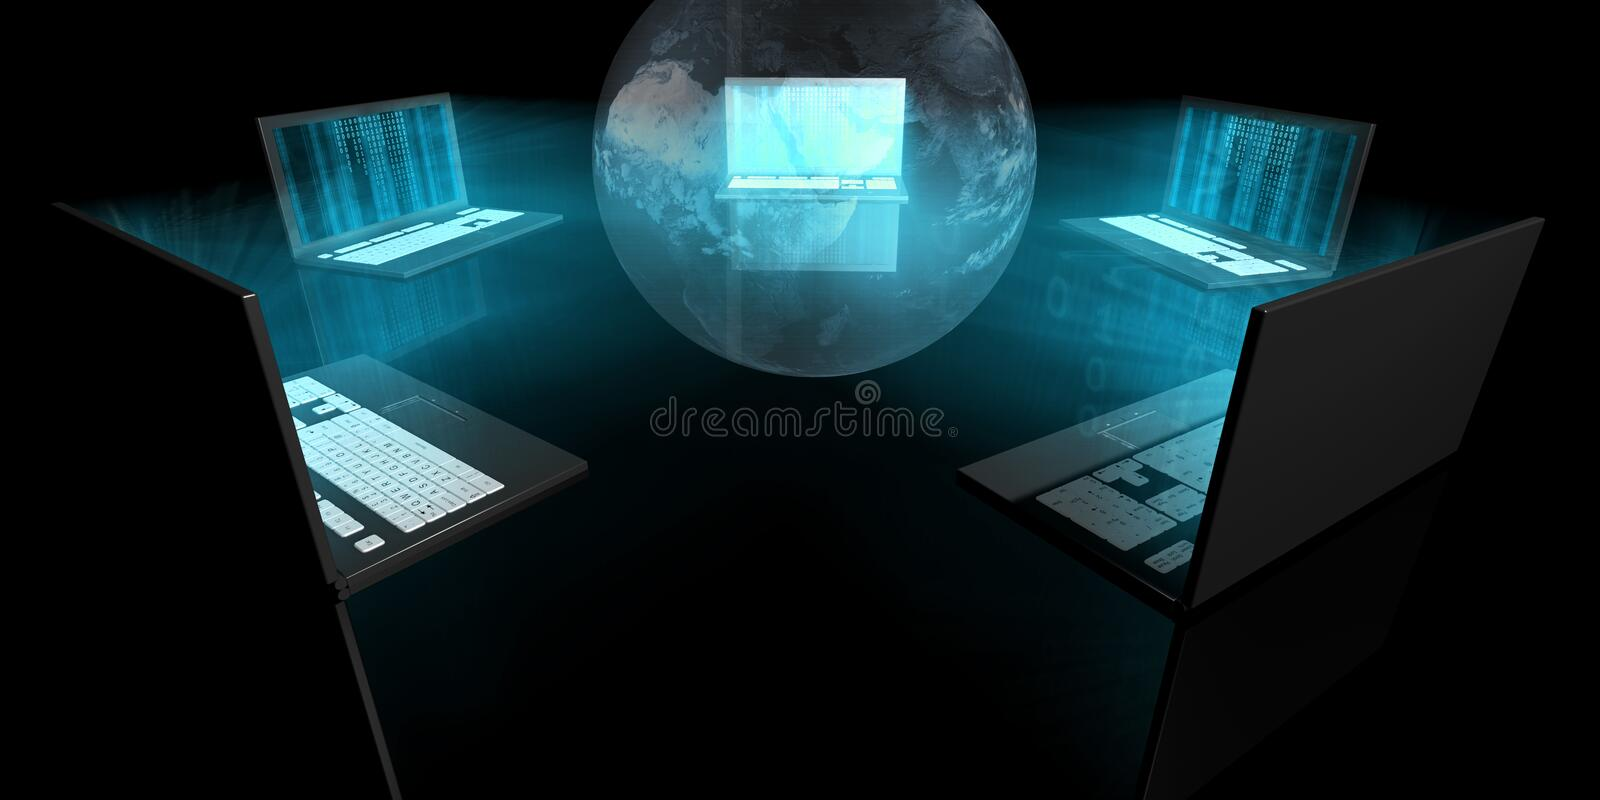 Blue Glow Laptops. A futuristic picture of a network with an hologram of Earth